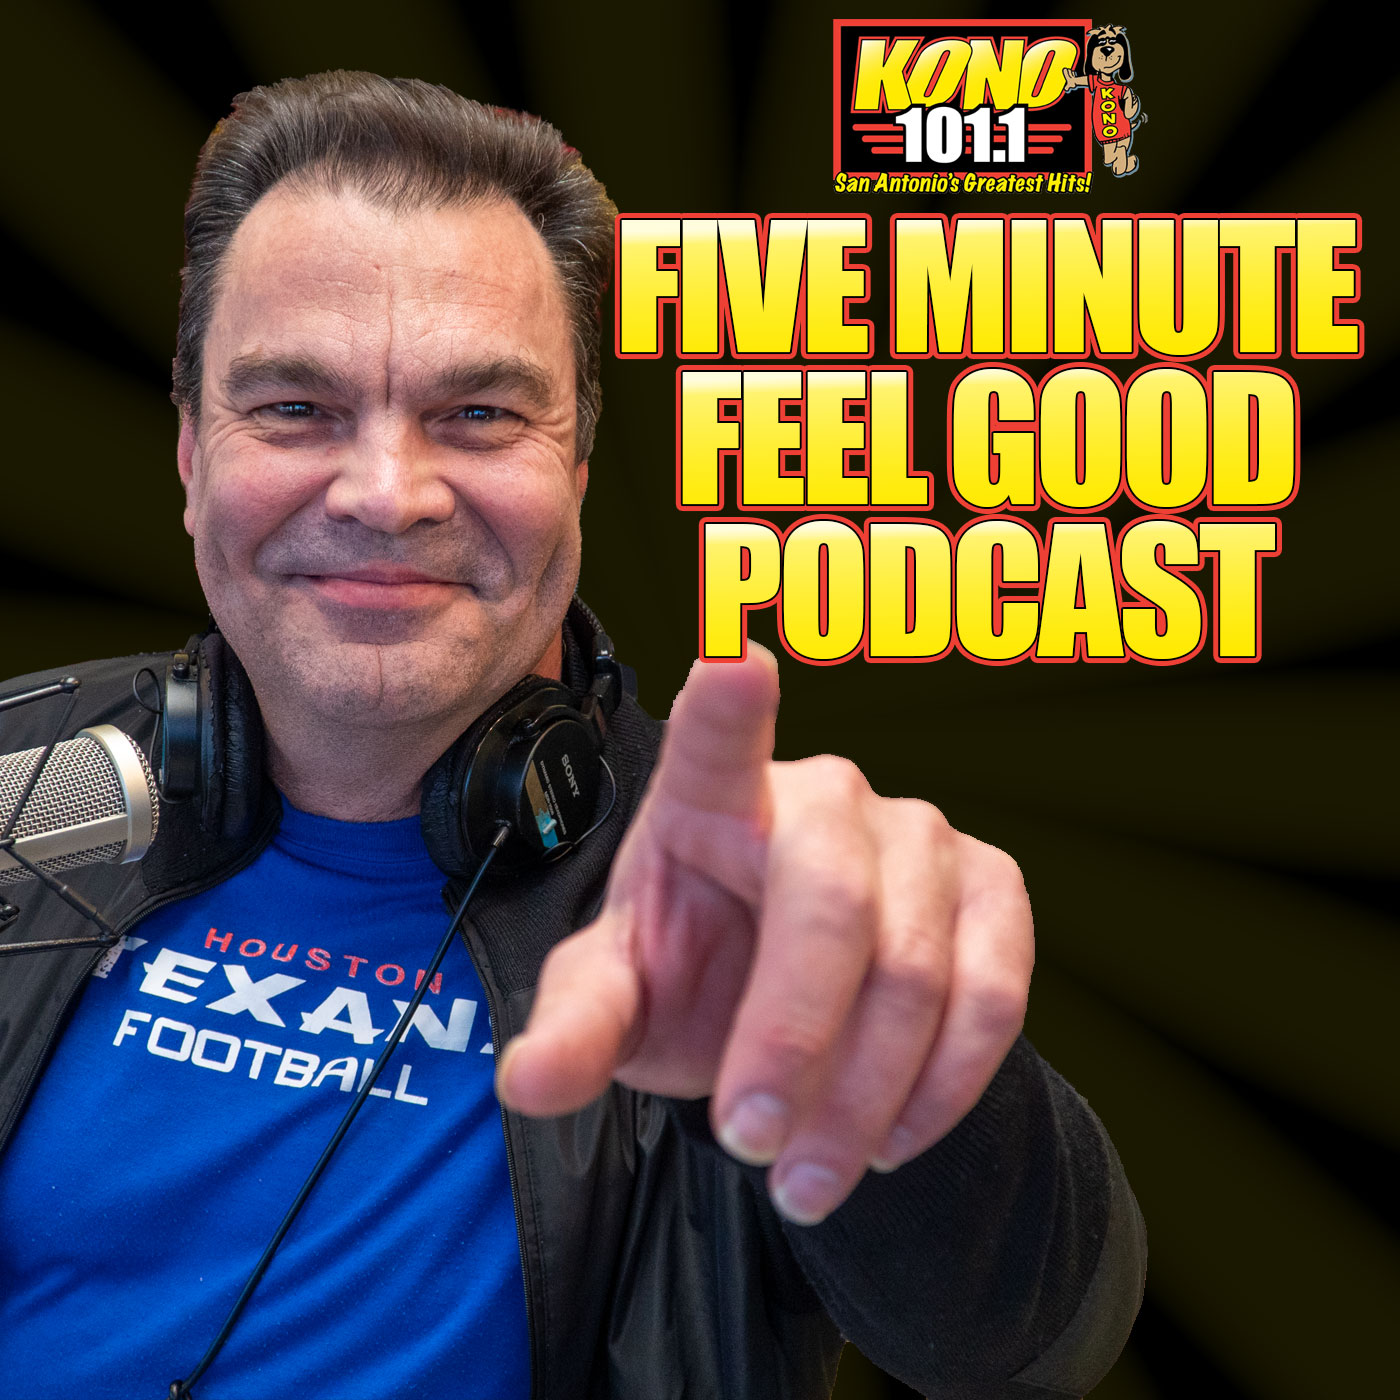 Five Minute Feel Good Podcast